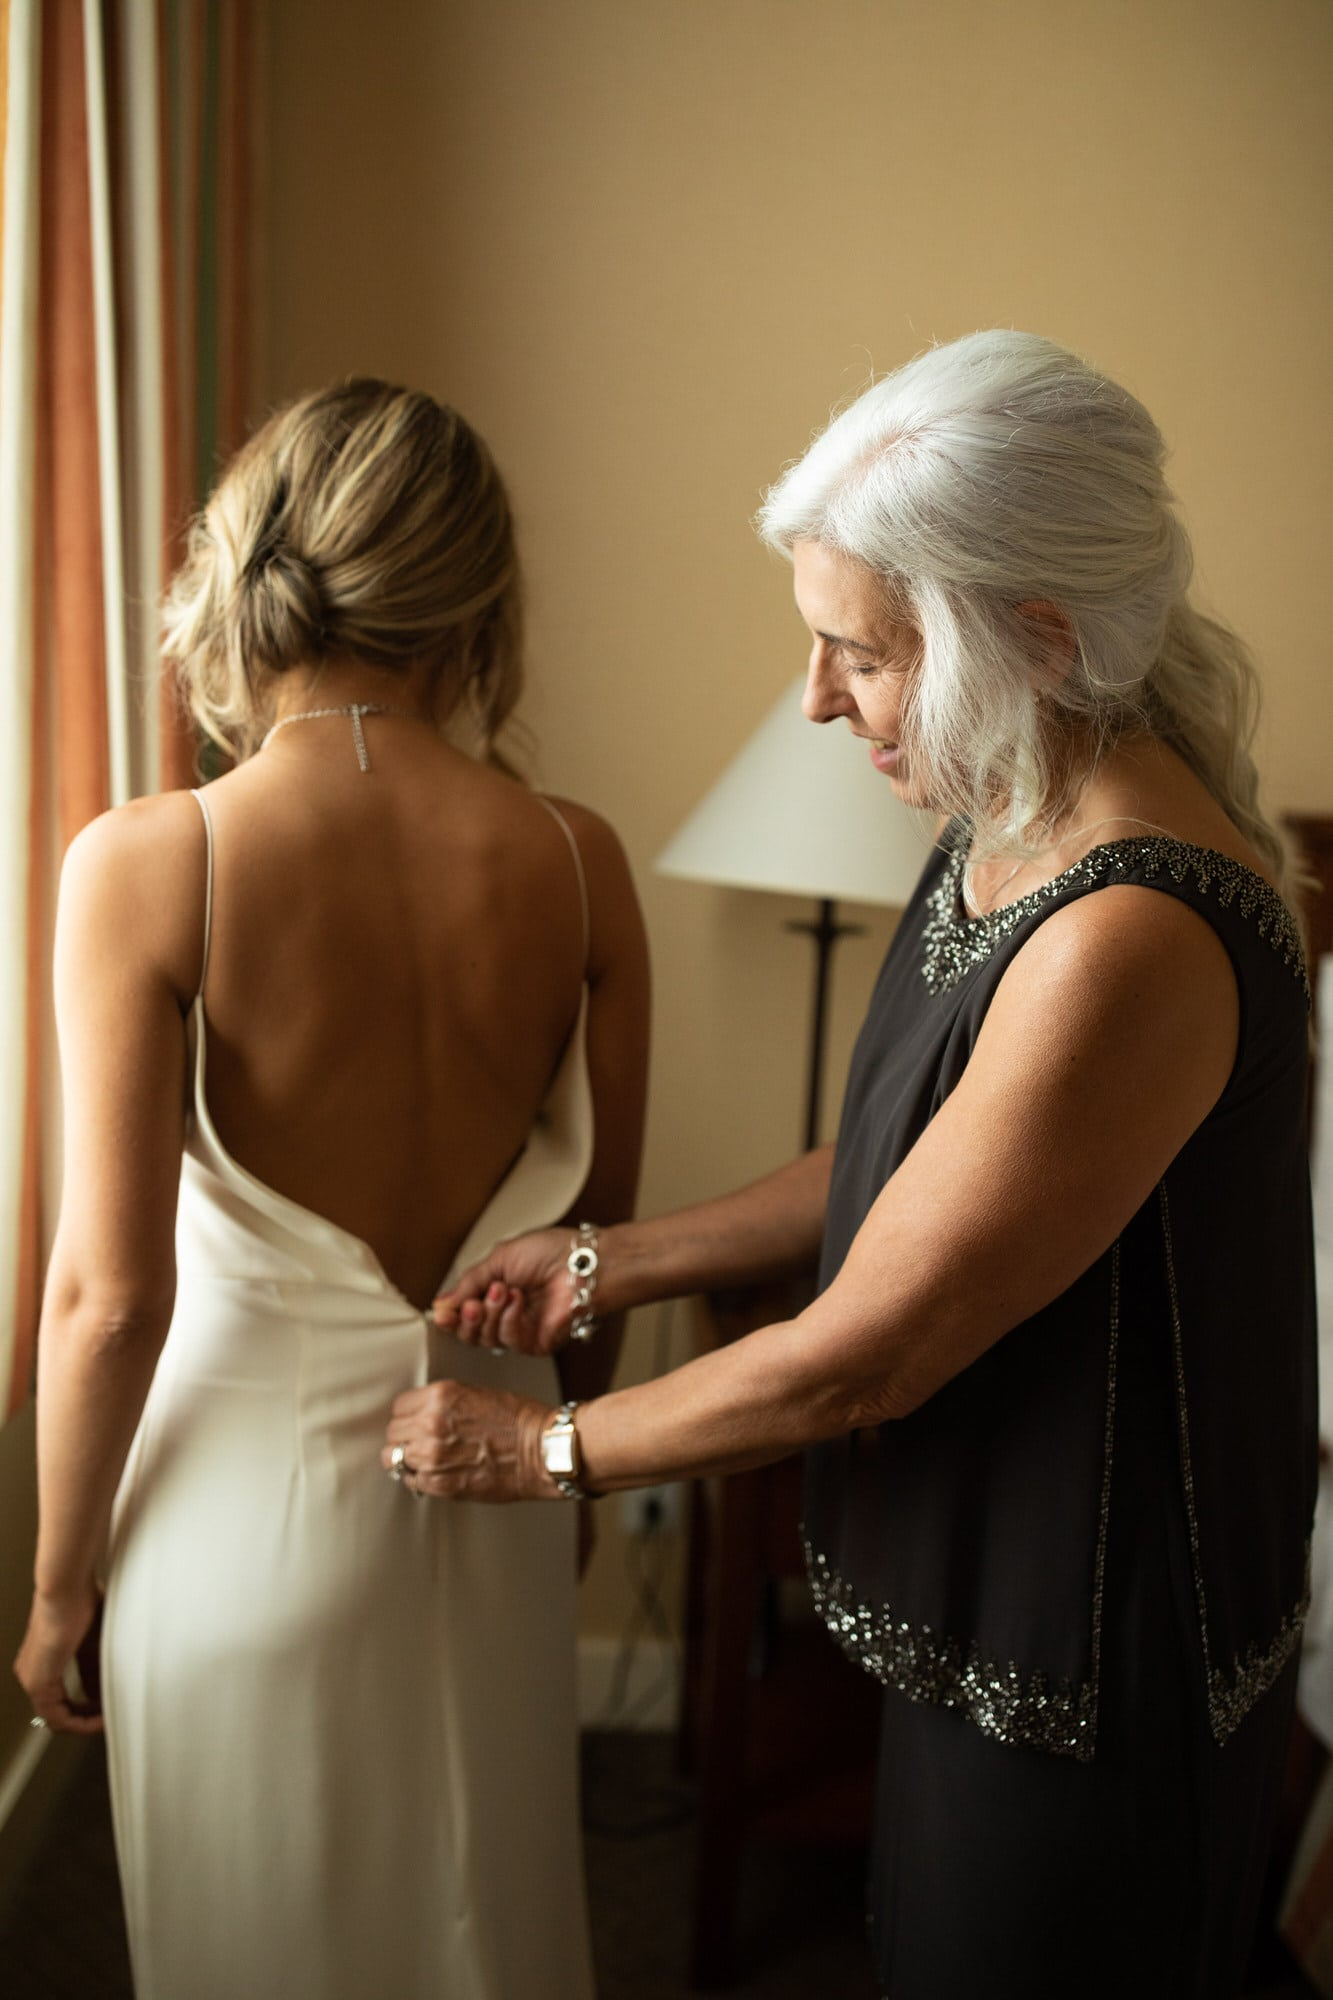 Mother of the bride helps with the dress. Destination wedding photographer Brent Calis.